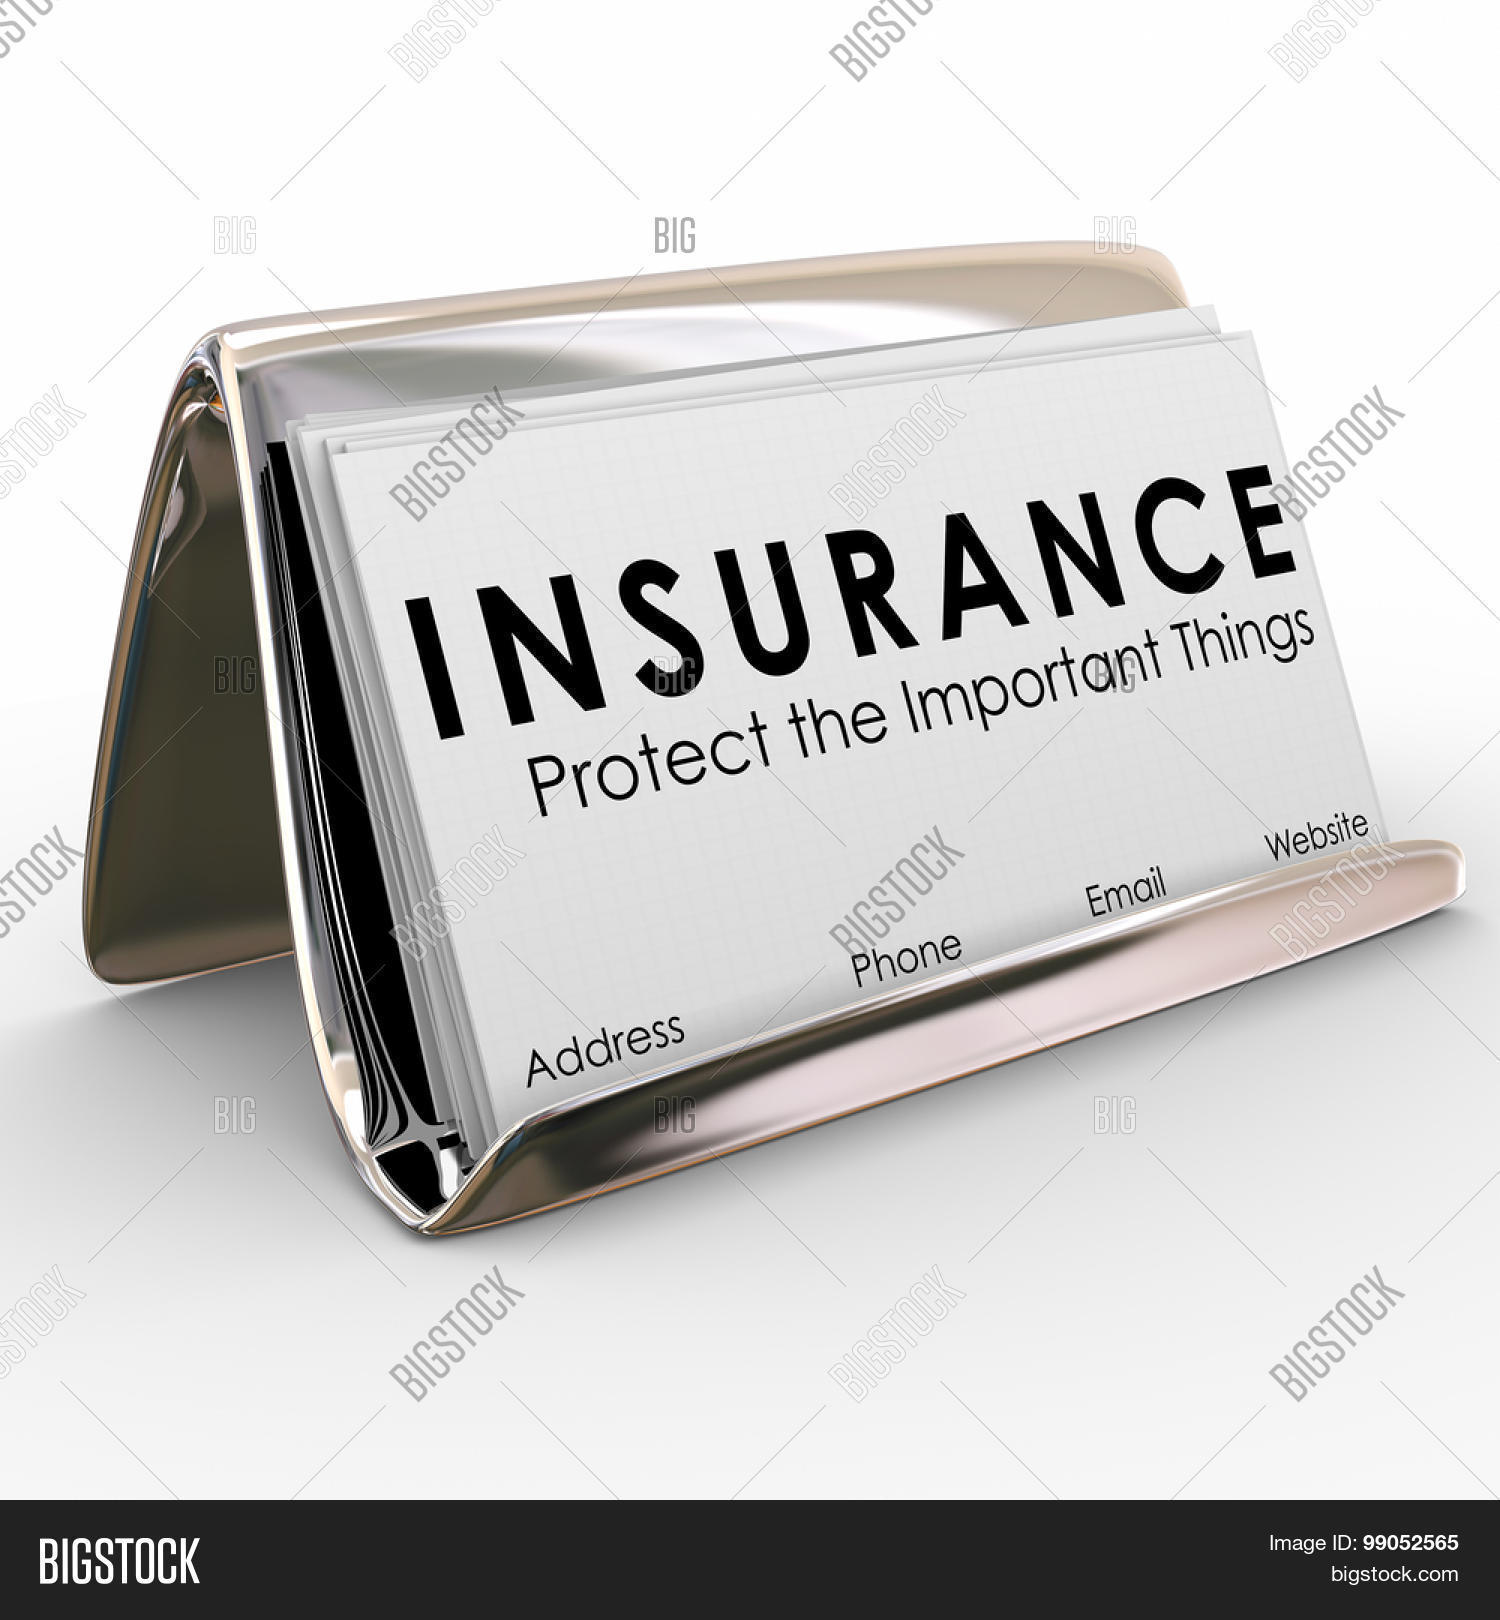 Insurance - Protect Important Image & Photo | Bigstock